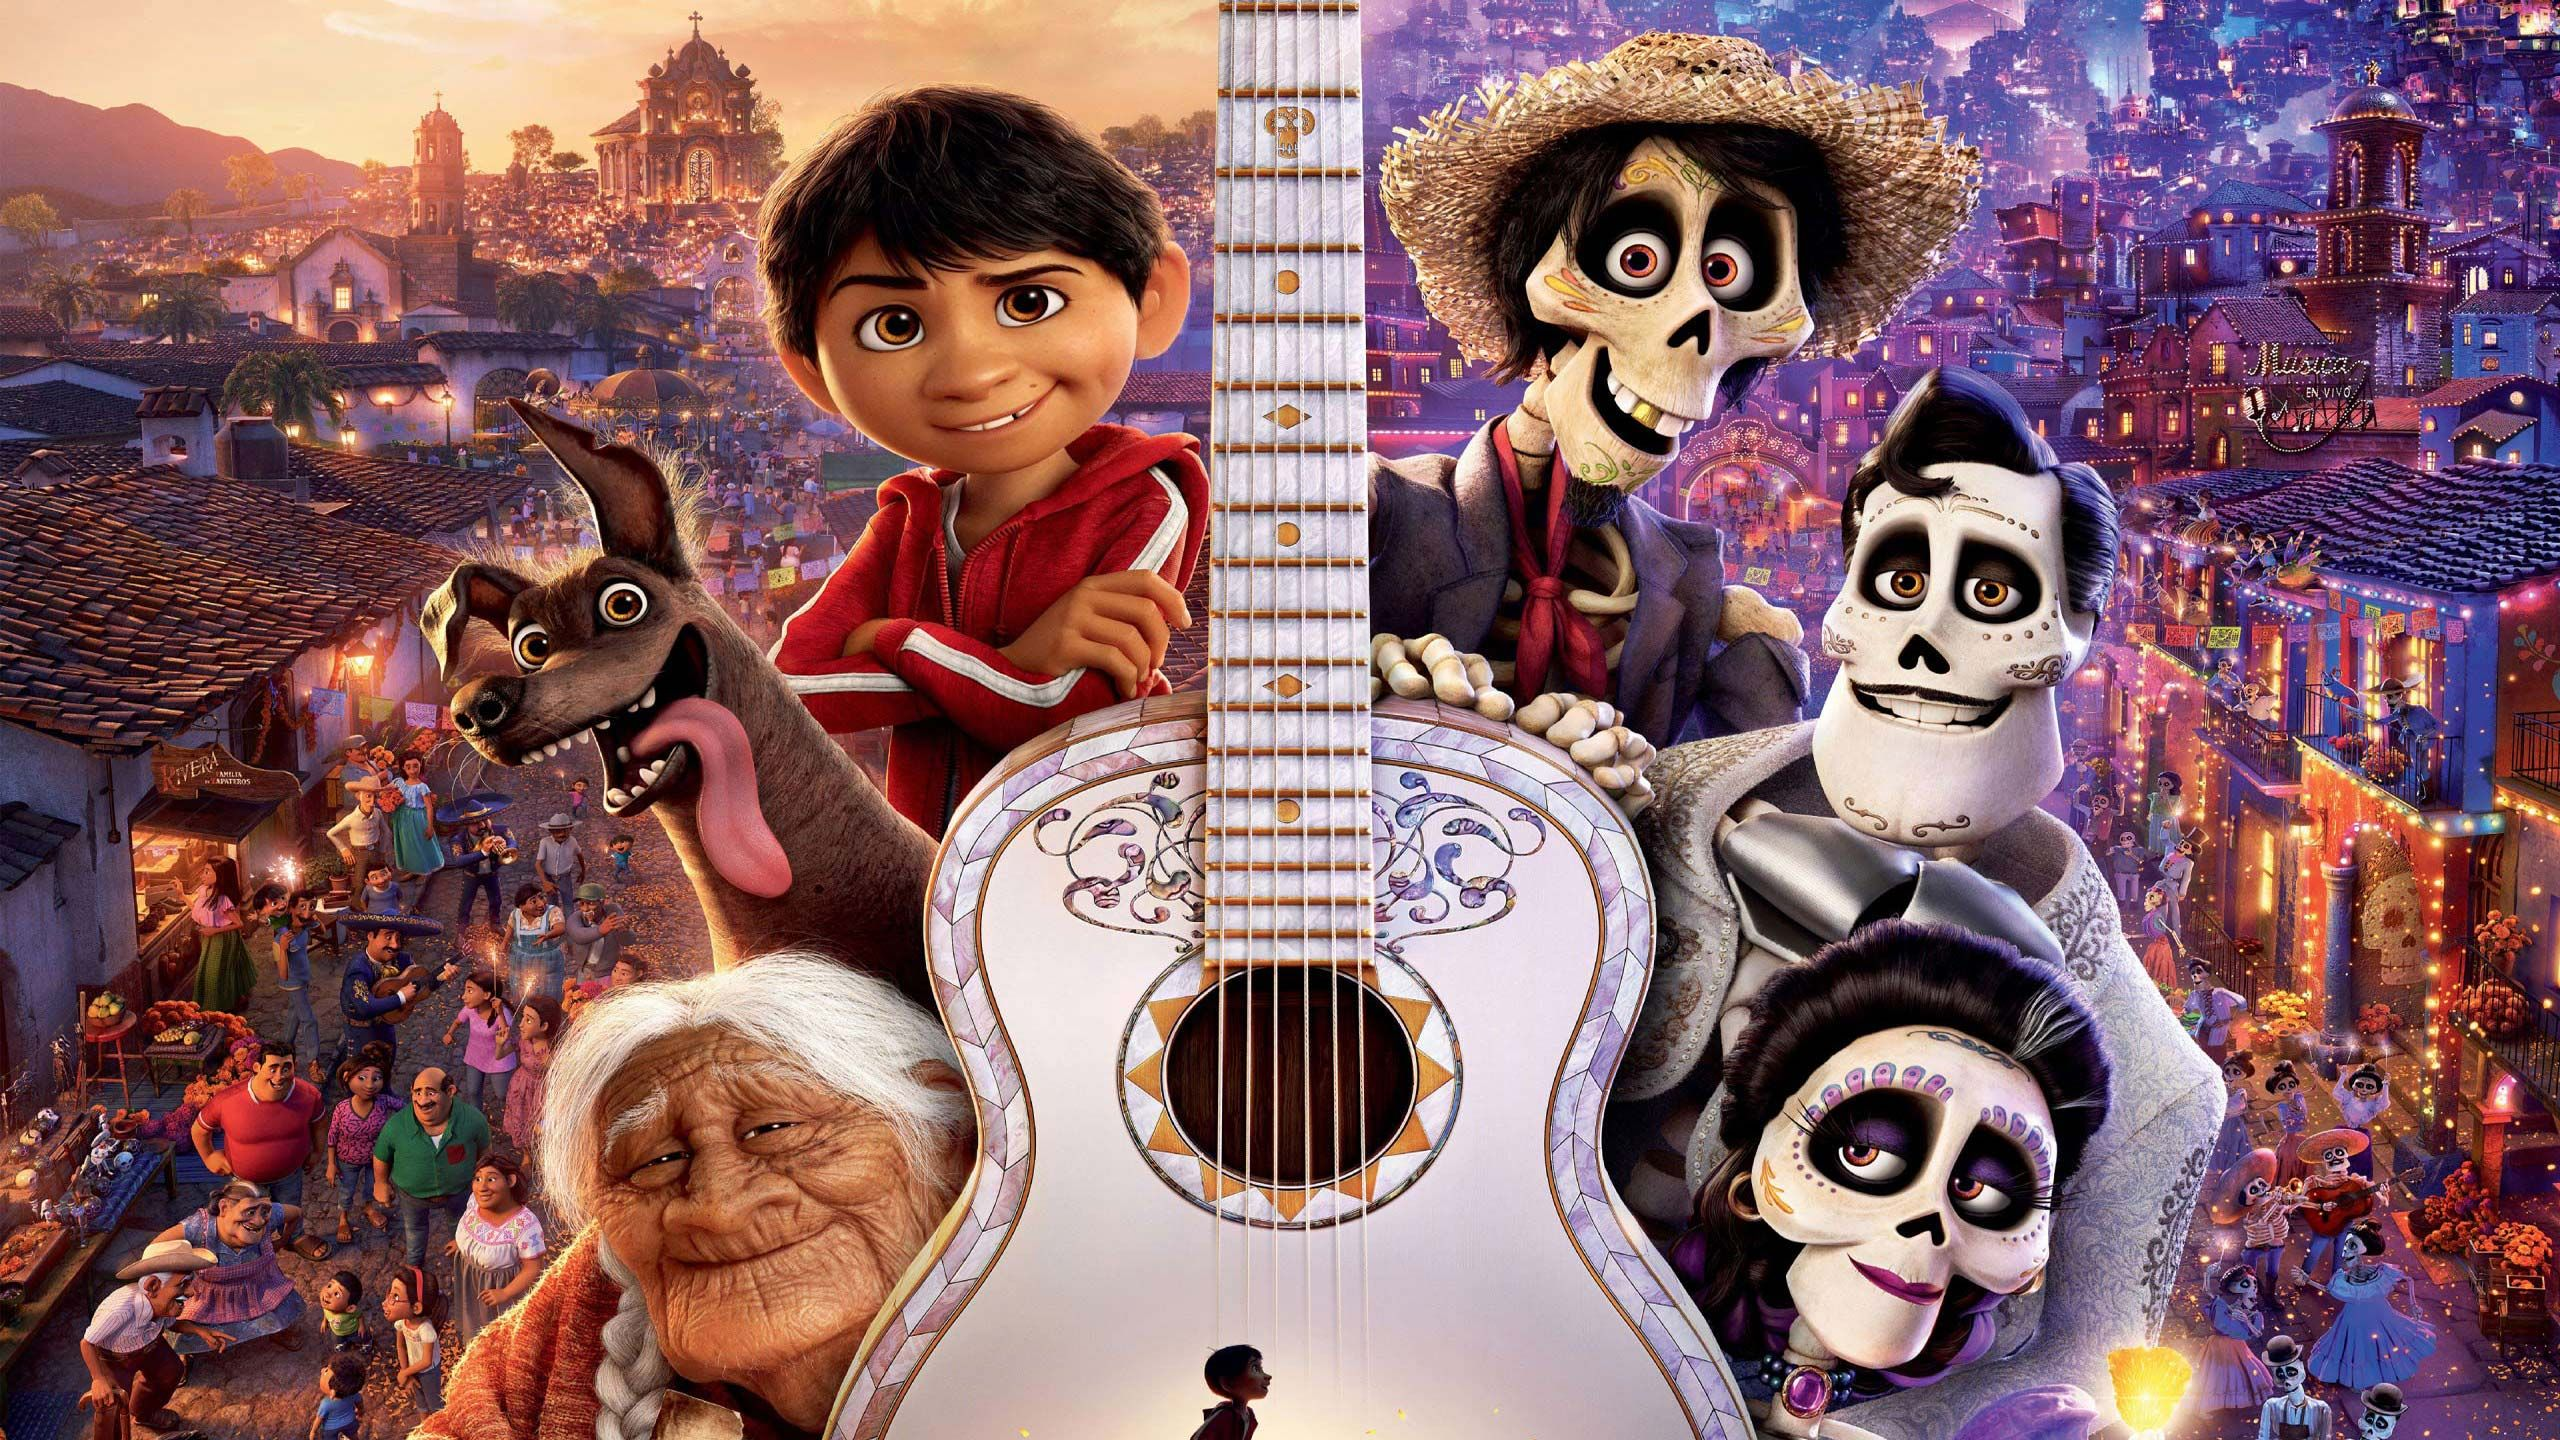 Free Coco Pixar Movie Computer Desktop Wallpapers Pictures Images Pixar Animation Film Coco